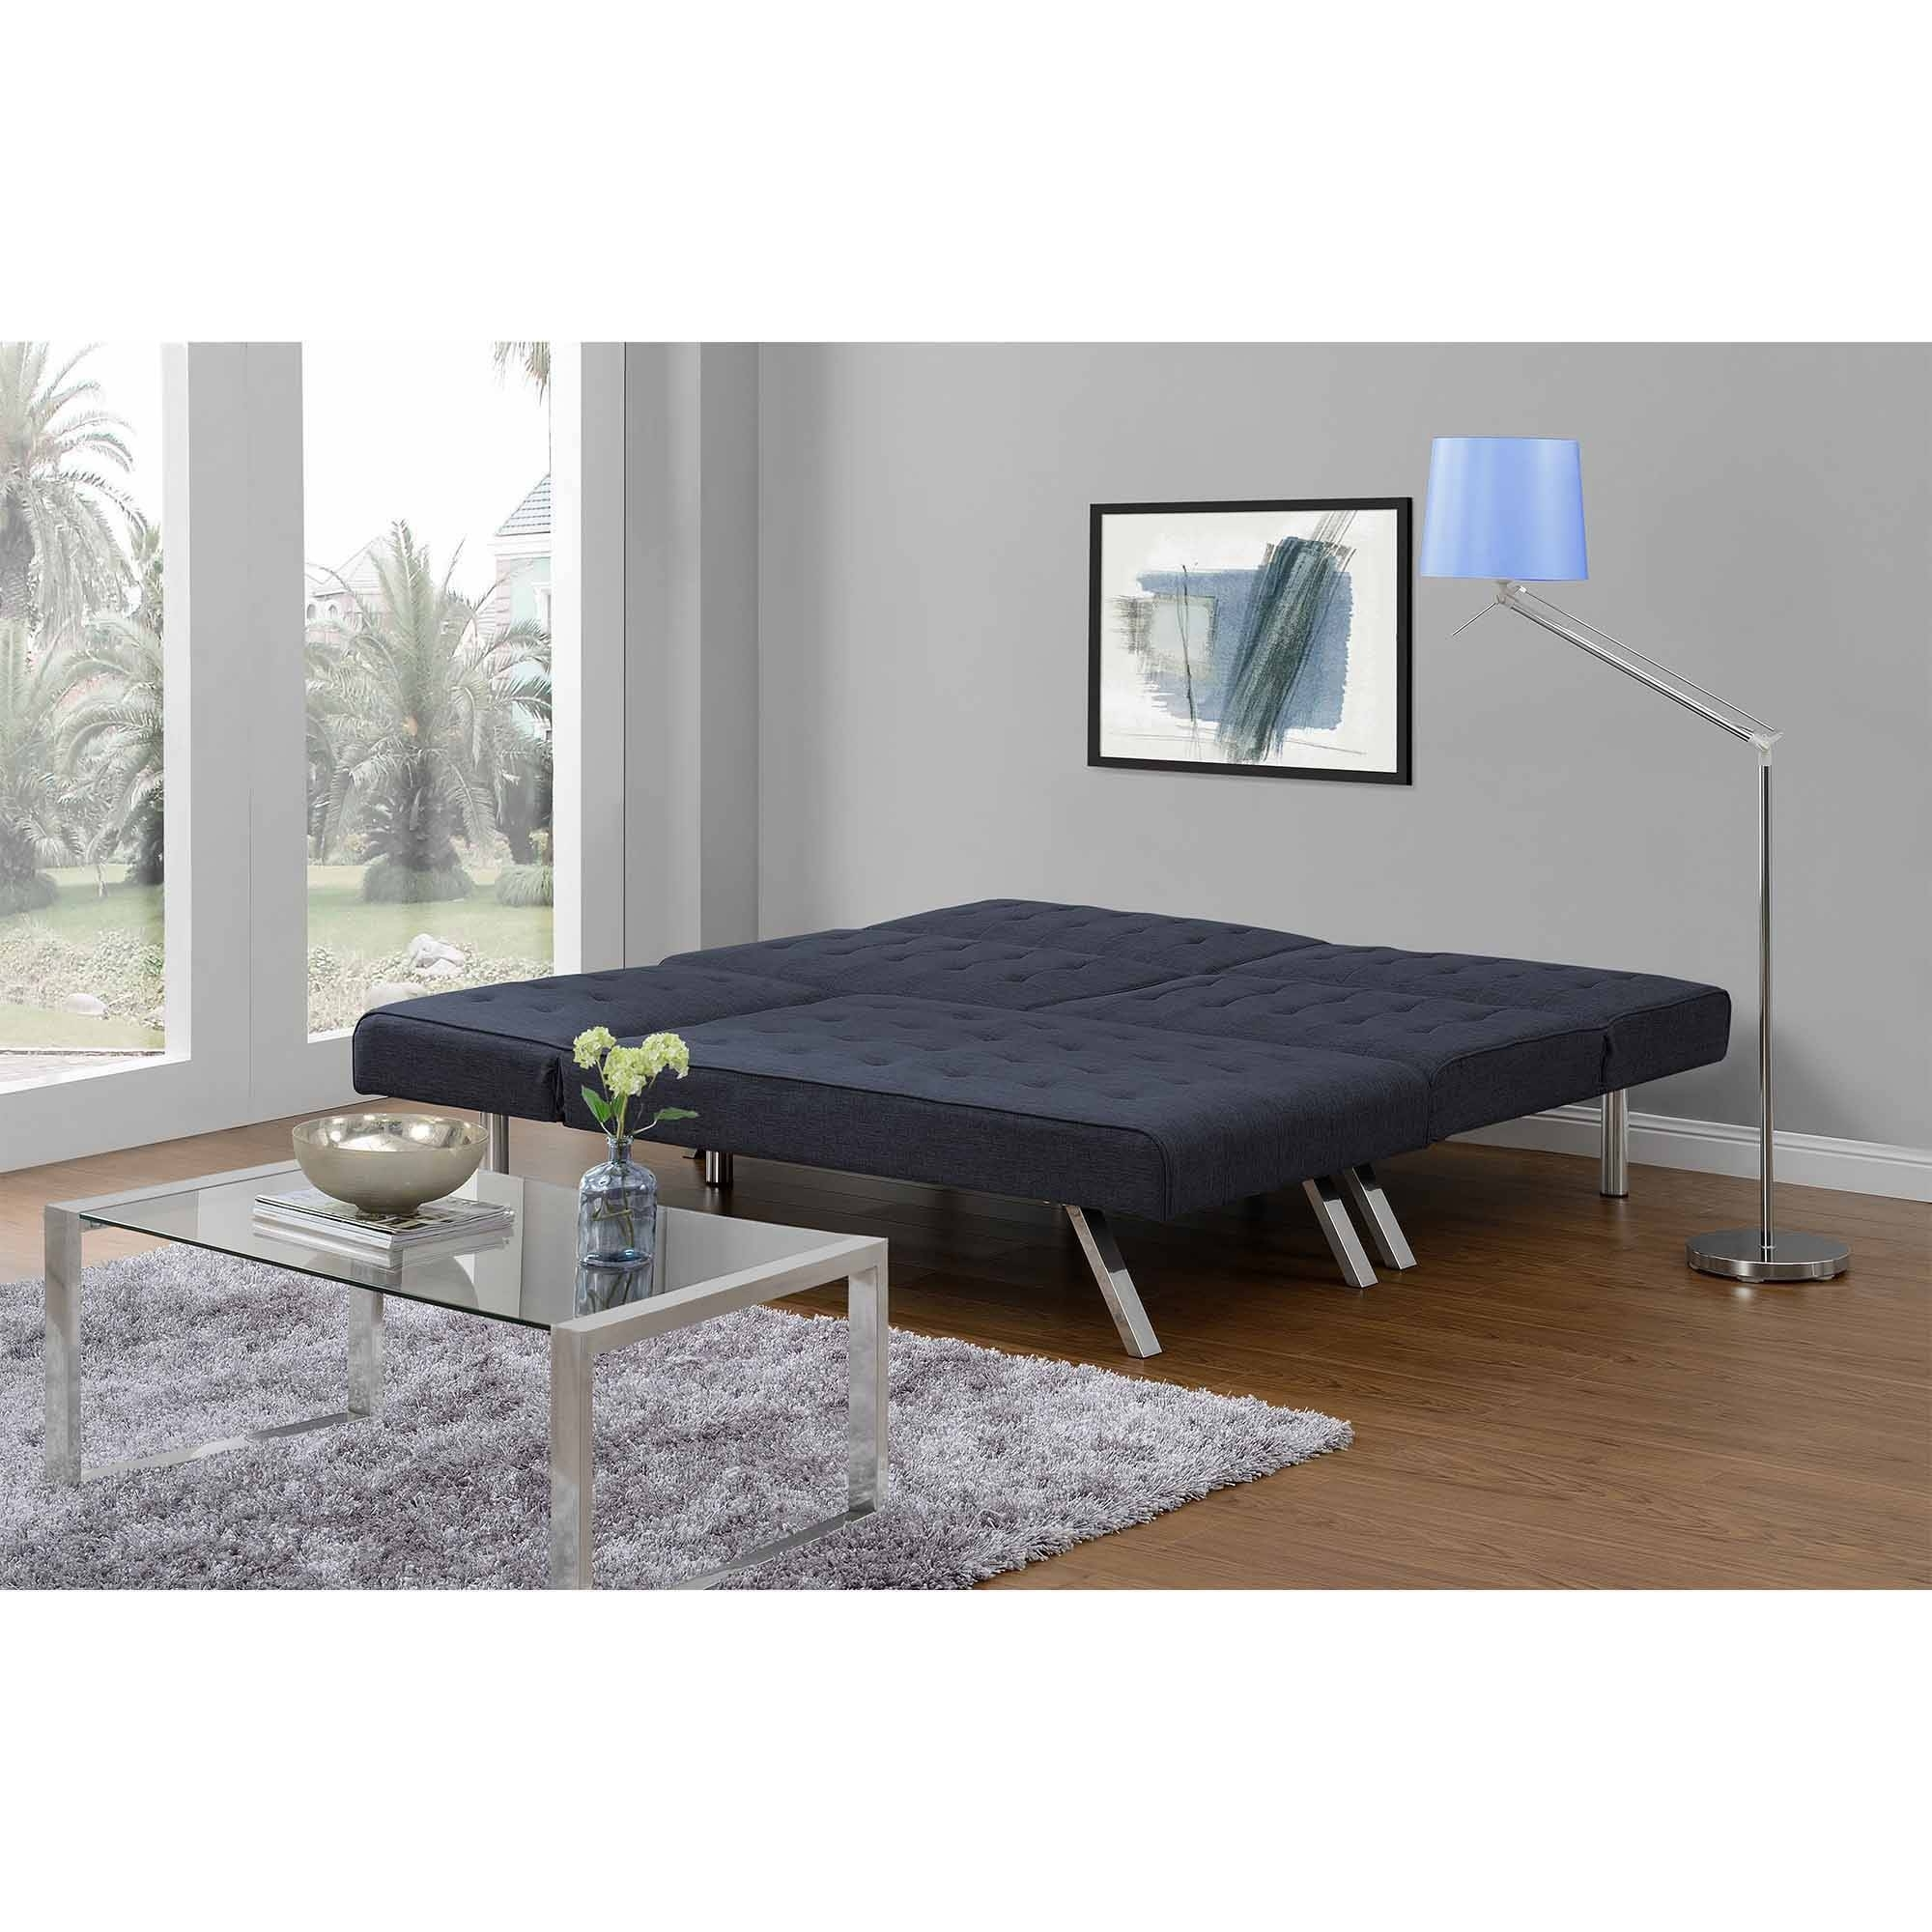 Dhp Emily Futon Chaise Lounger, Multiple Colors – Walmart With Current Futons With Chaise (View 3 of 15)